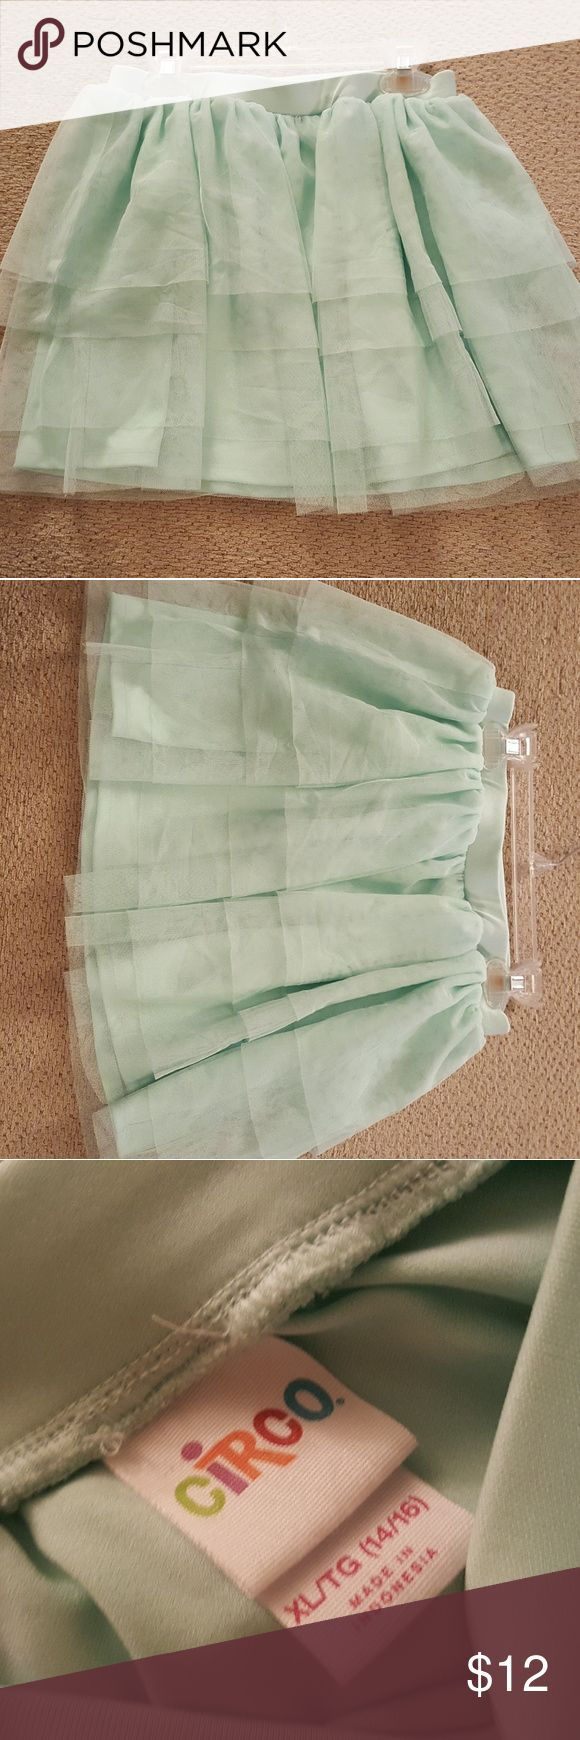 Great condition 😍 Mint green skirt 🤗 Only worn 3 times, this skirt is still in great condition and still looks new. My daughter wore this with leggings and you can dress this up or dress it down.. she unfortunately grew out of this cute skirt and I am sad she cannot wear this cute skirt anymore. Comes from a smoke free home! 🚭 Circo Bottoms Skirts